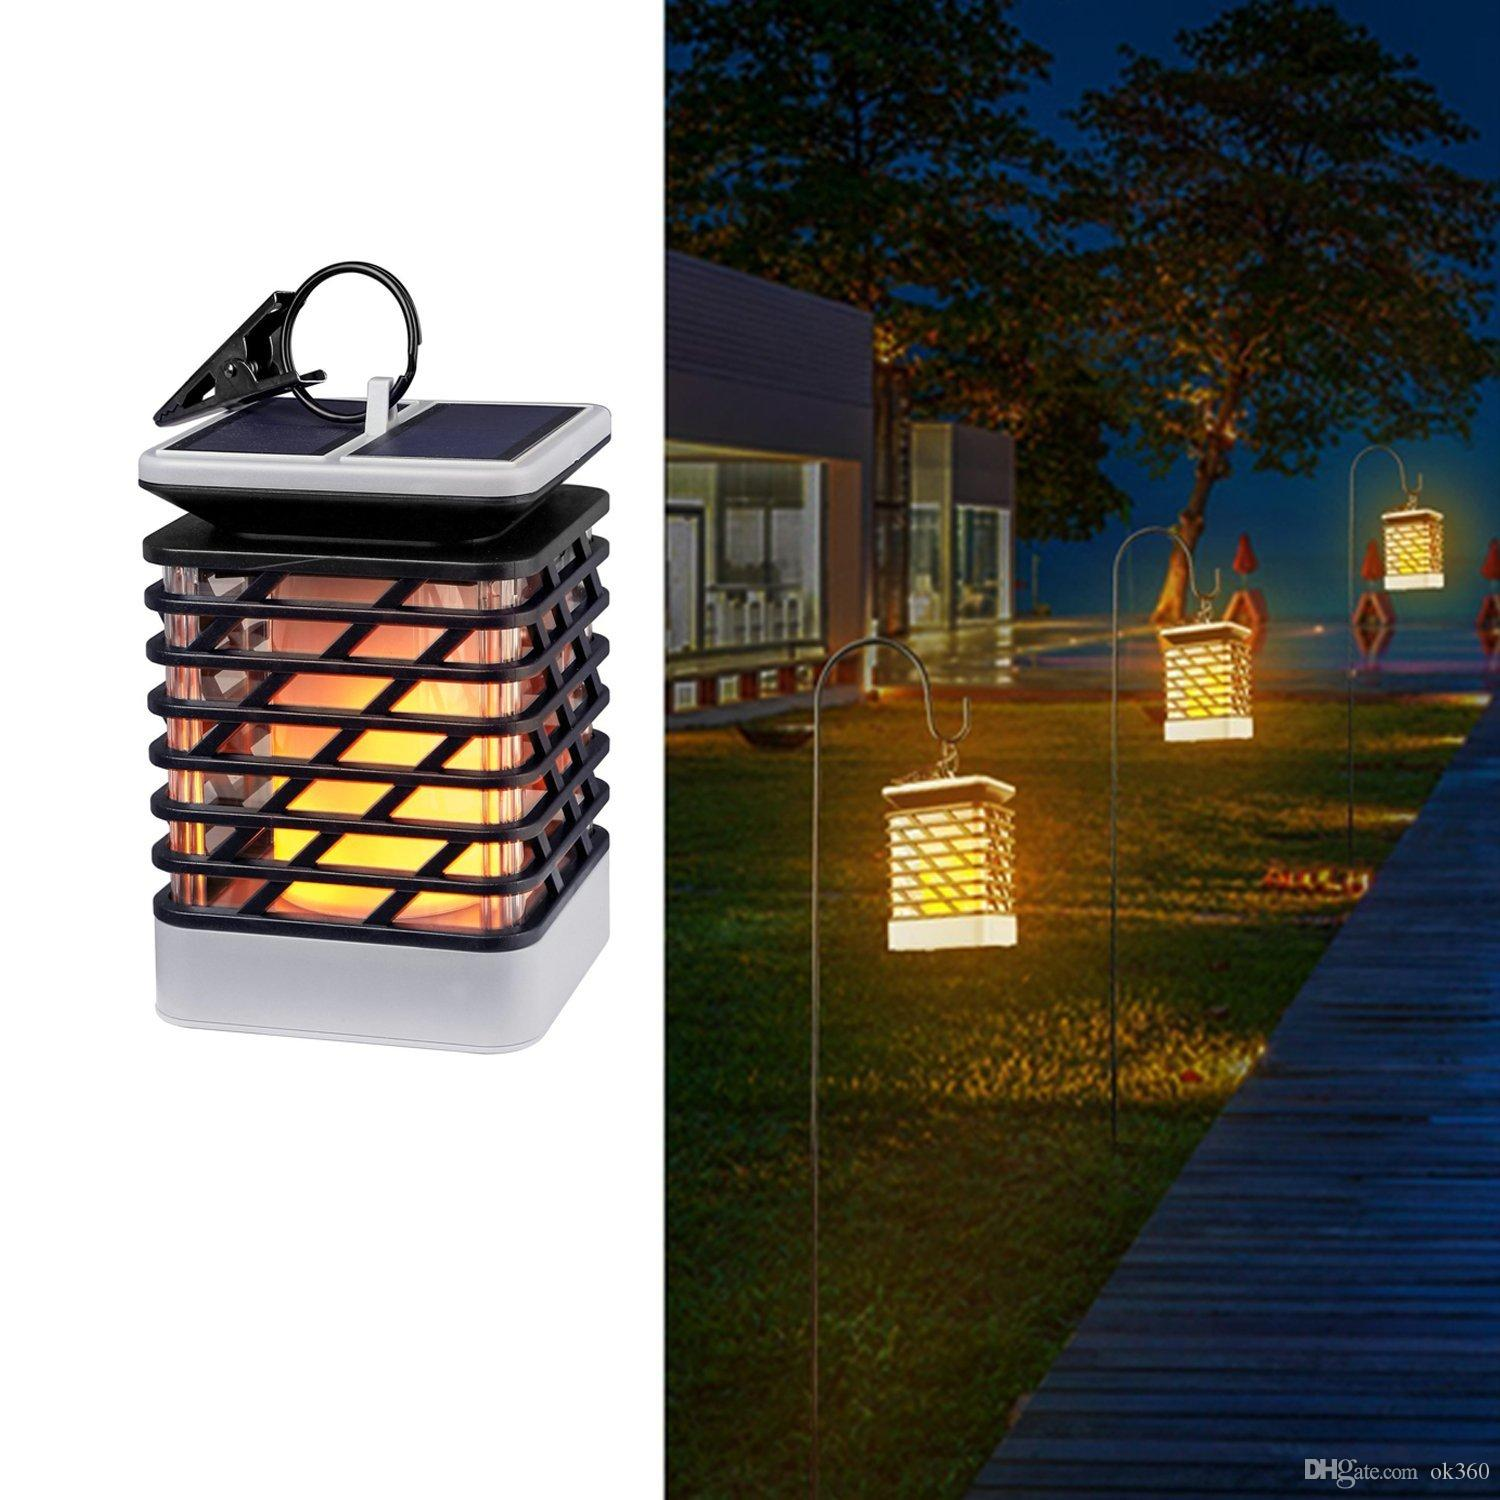 solar lantern lights outdoor led 2018 solar lights outdoor led flickering flame torch lantern hanging atmosphere lamp for pathway garden christmas holiday party from ok360